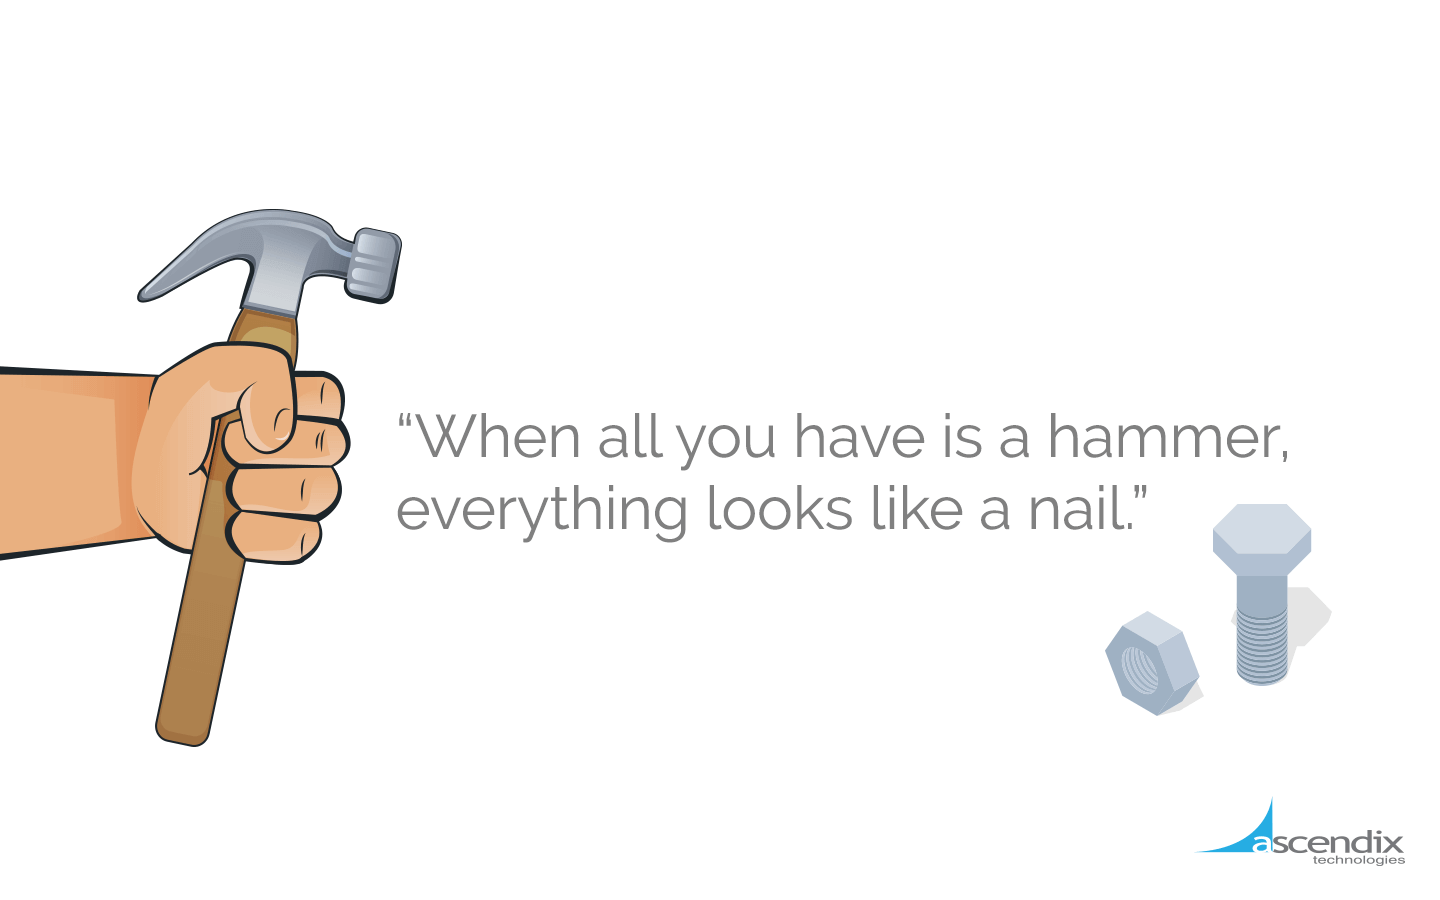 When-all-you-have-is-a-hammer-everything-looks-like-a-nail-Ascendix